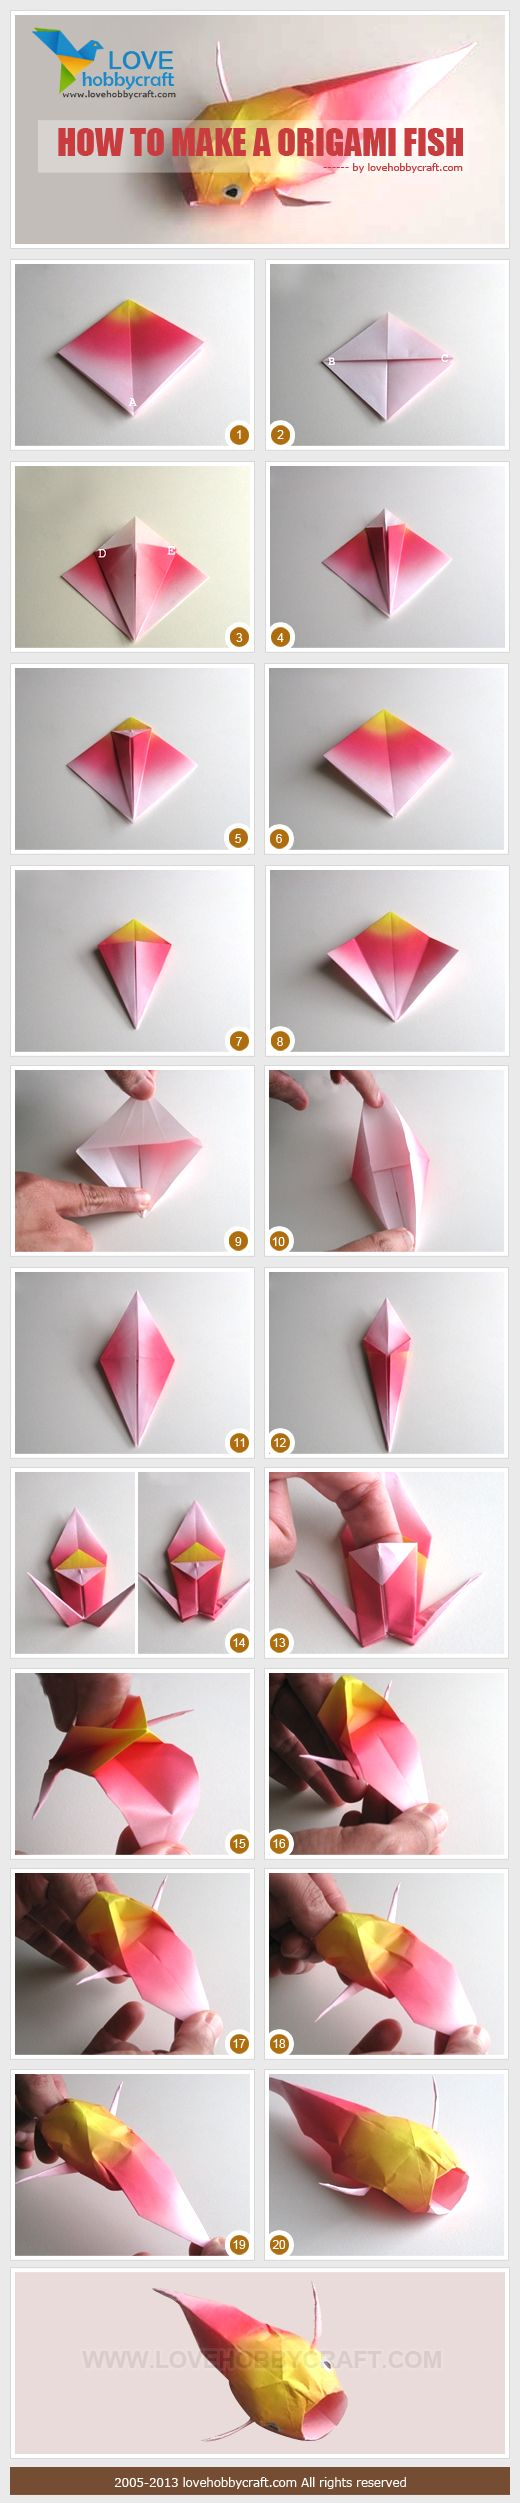 How To Fold An Origami Fish - Art For Kids Hub - | 2503x520